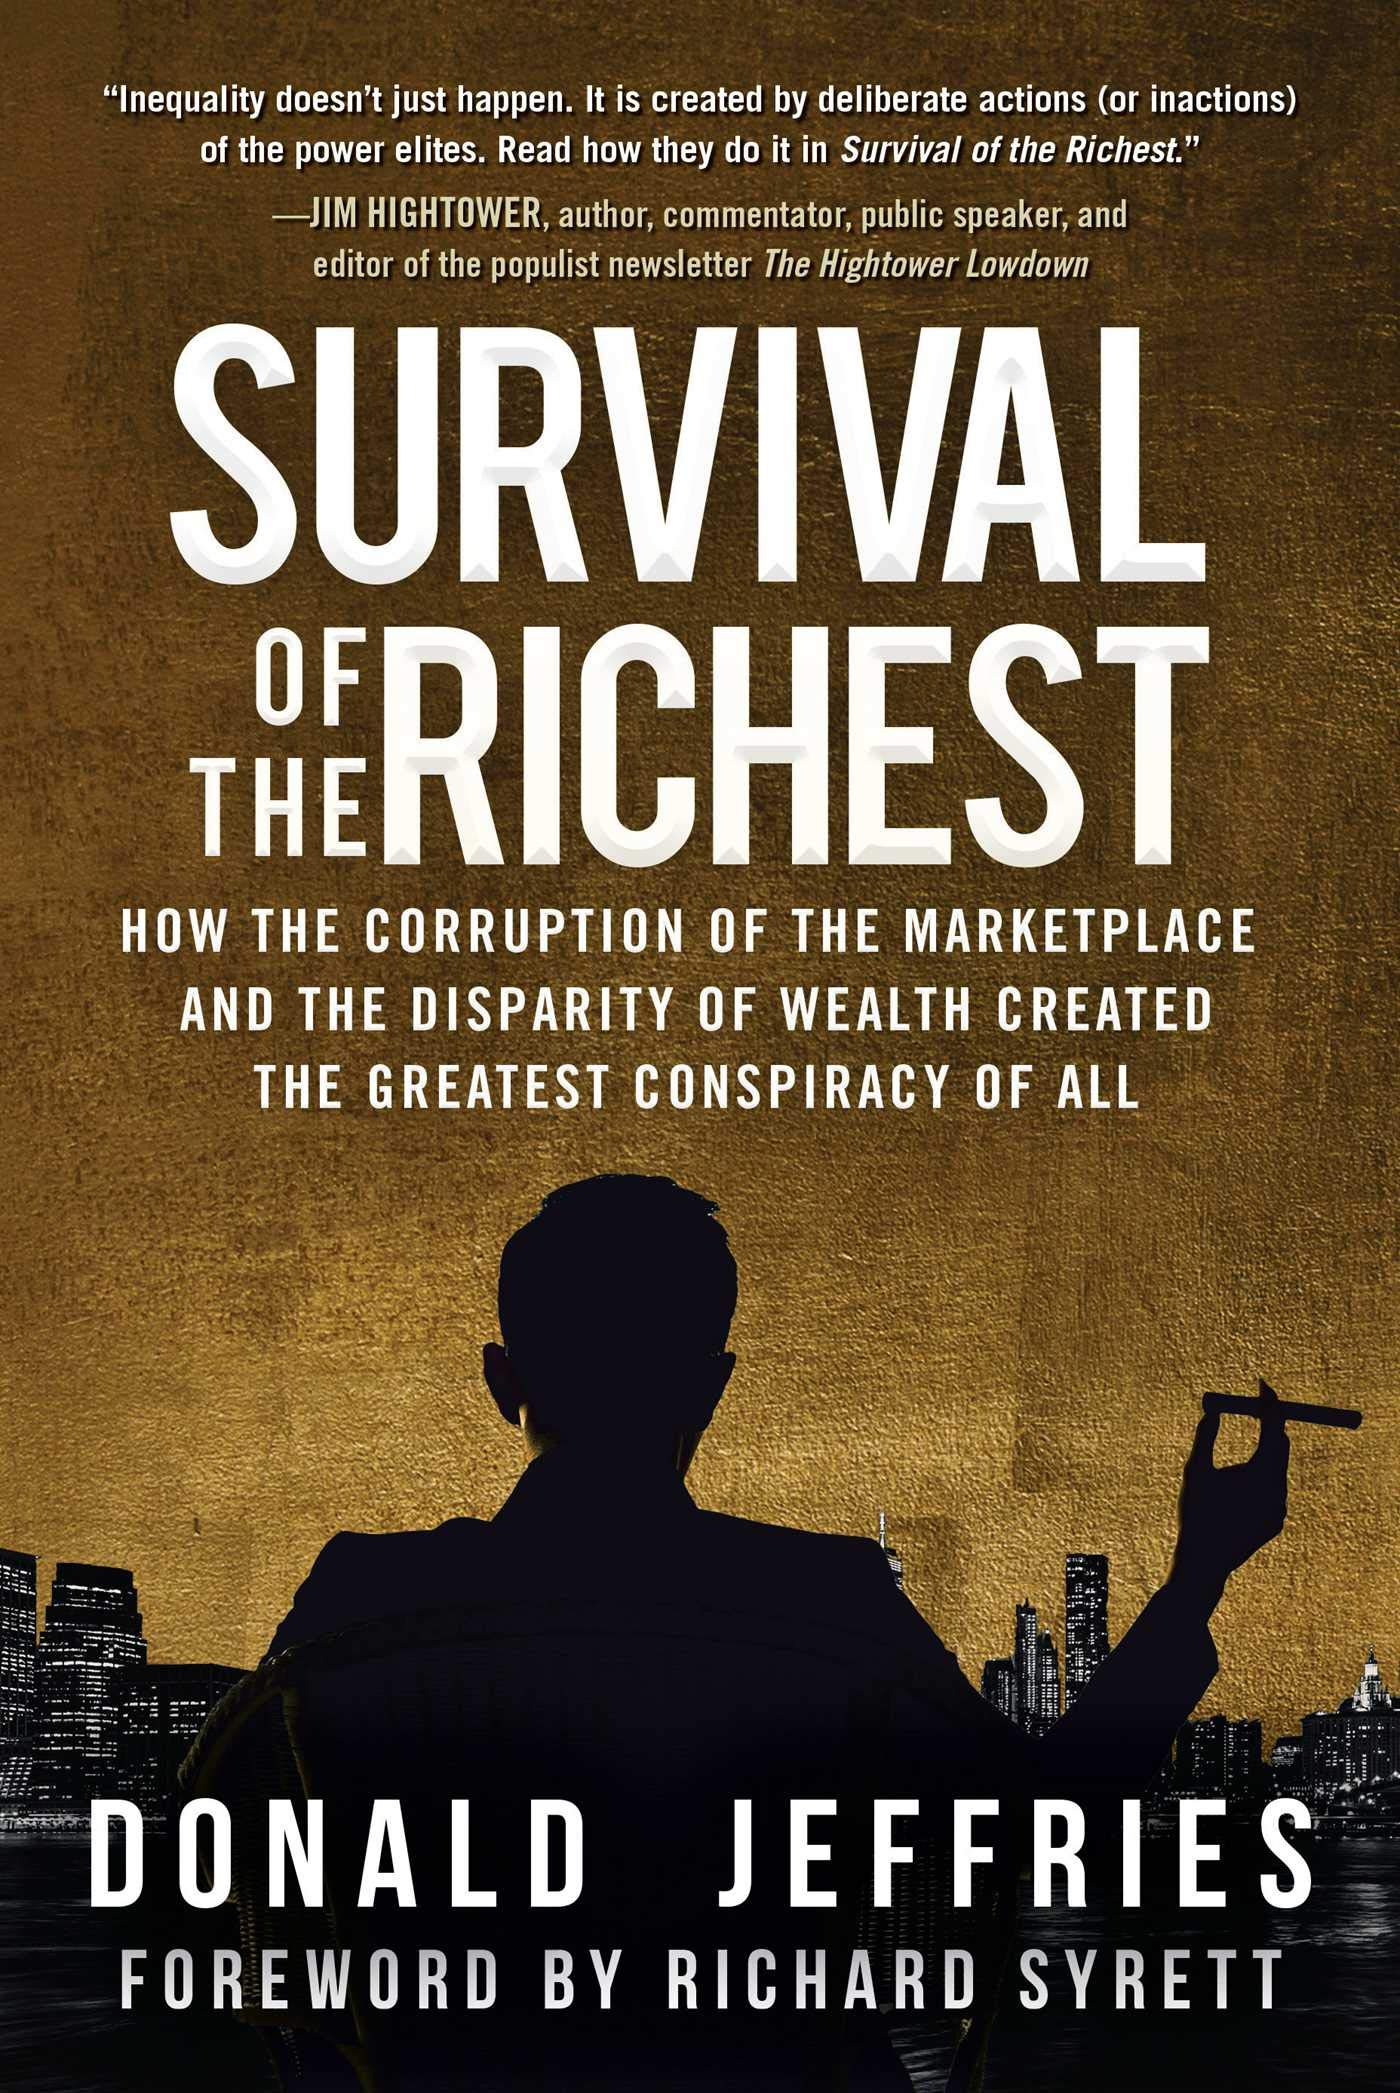 Survival of the Richest: How the Corruption of the Marketplace and the Disparity of Wealth Created the Greatest Conspiracy of All